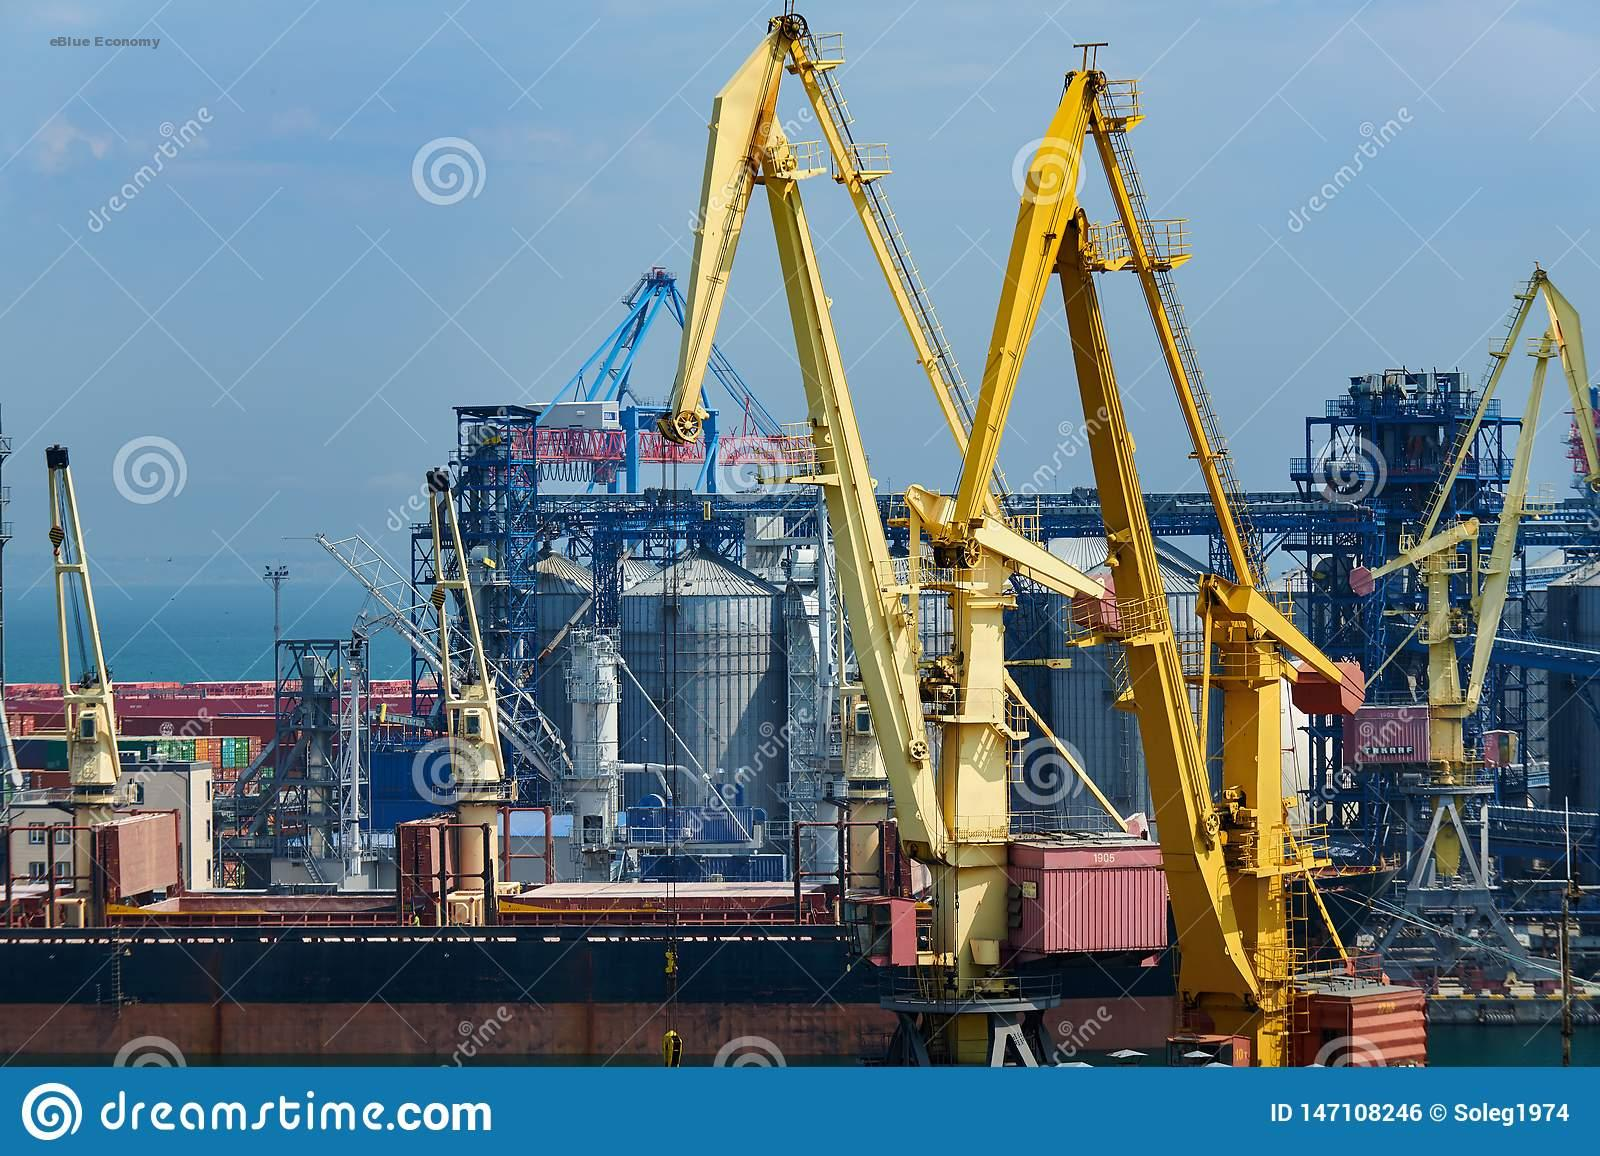 eBlue_economy_ DP World TIS Pivdennyi container terminal in Ukraine shows good results in the first 12 months